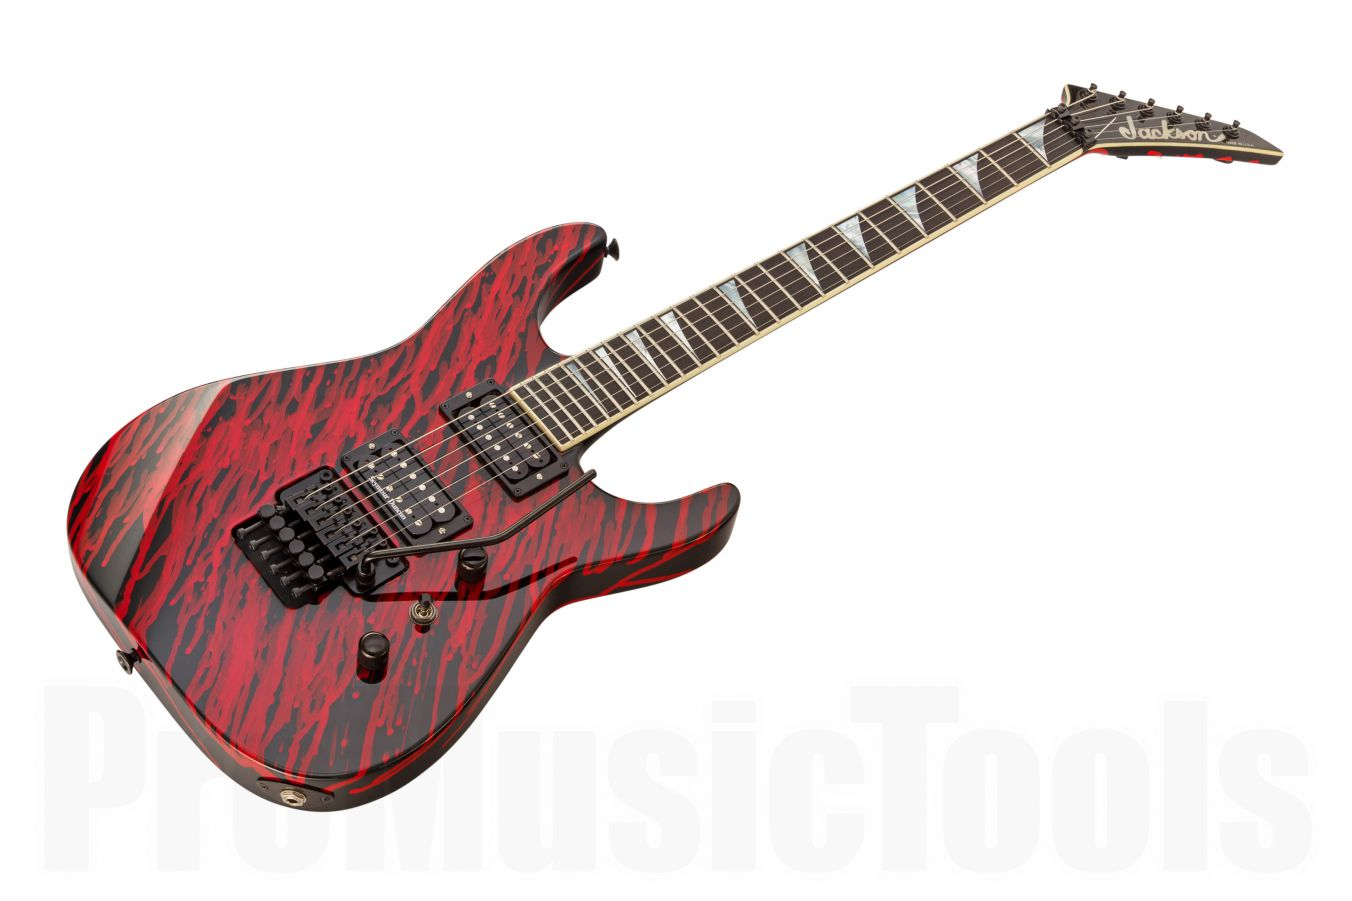 Jackson USA Custom Shop Soloist SL2H - Blood Drop Graphics